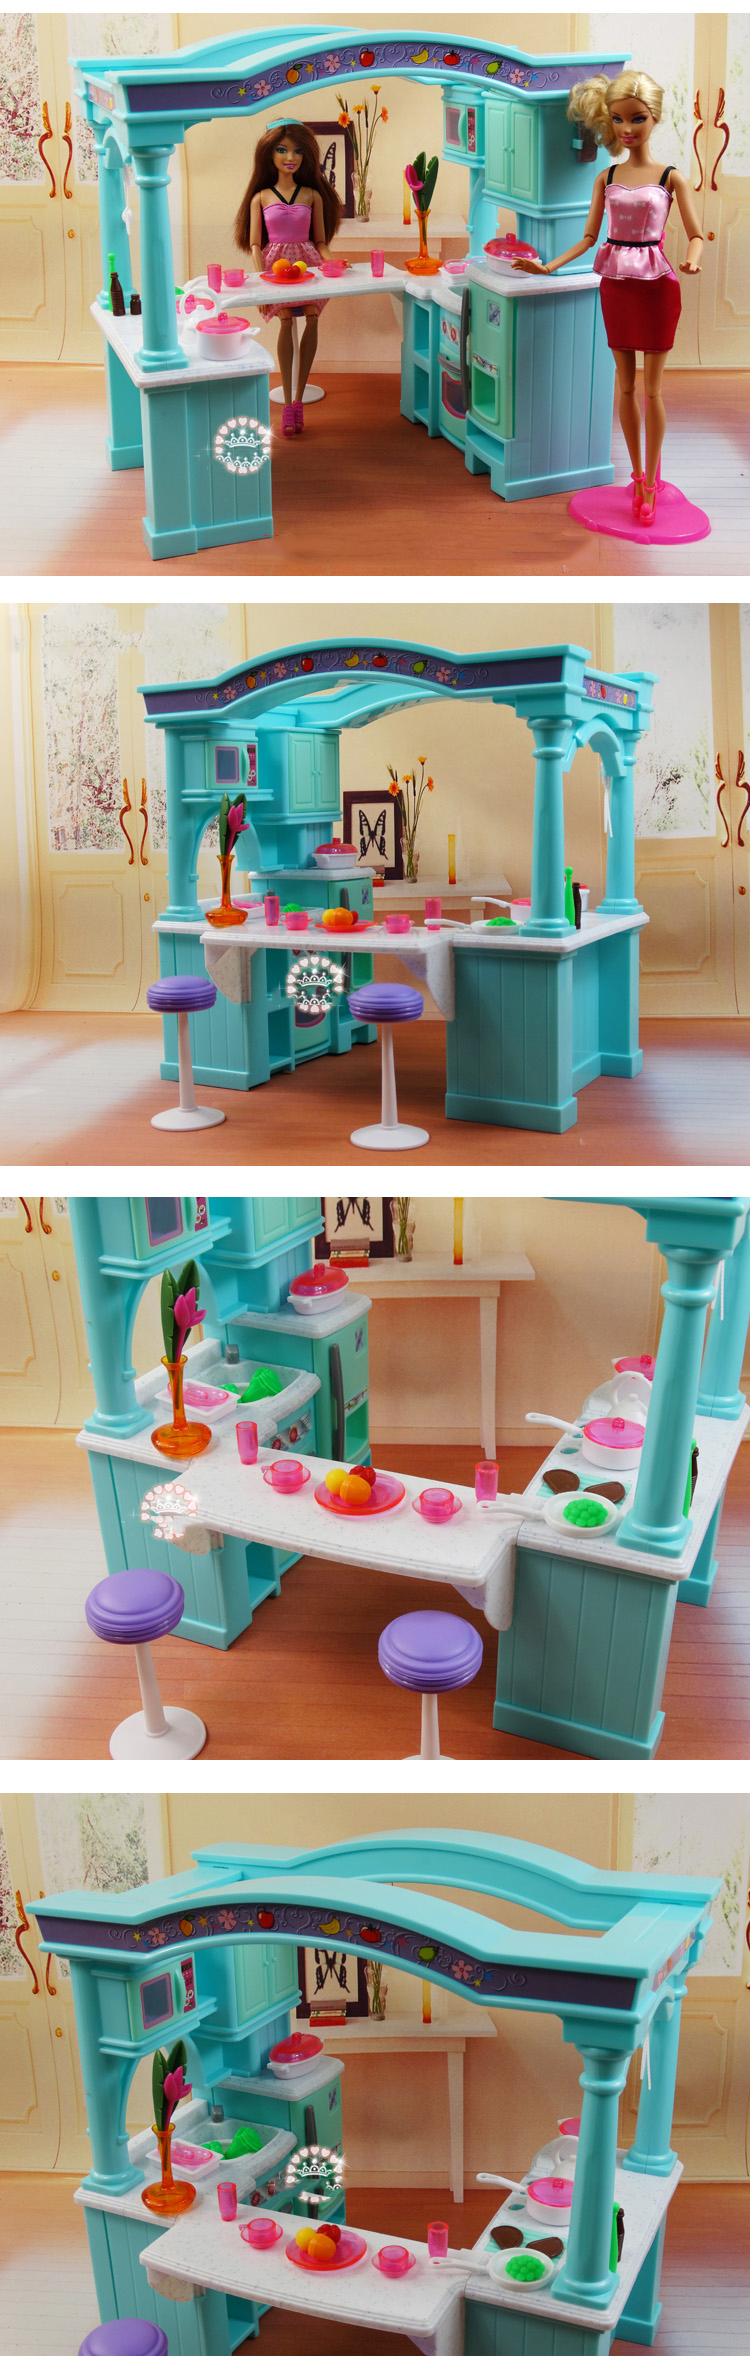 Multiple Functional Mega Kitchen For Barbie Dollhouse Furniture Big Size Diy Building Model Toy For Girl Cosplay Fun Accessories Dolls Accessories Aliexpress